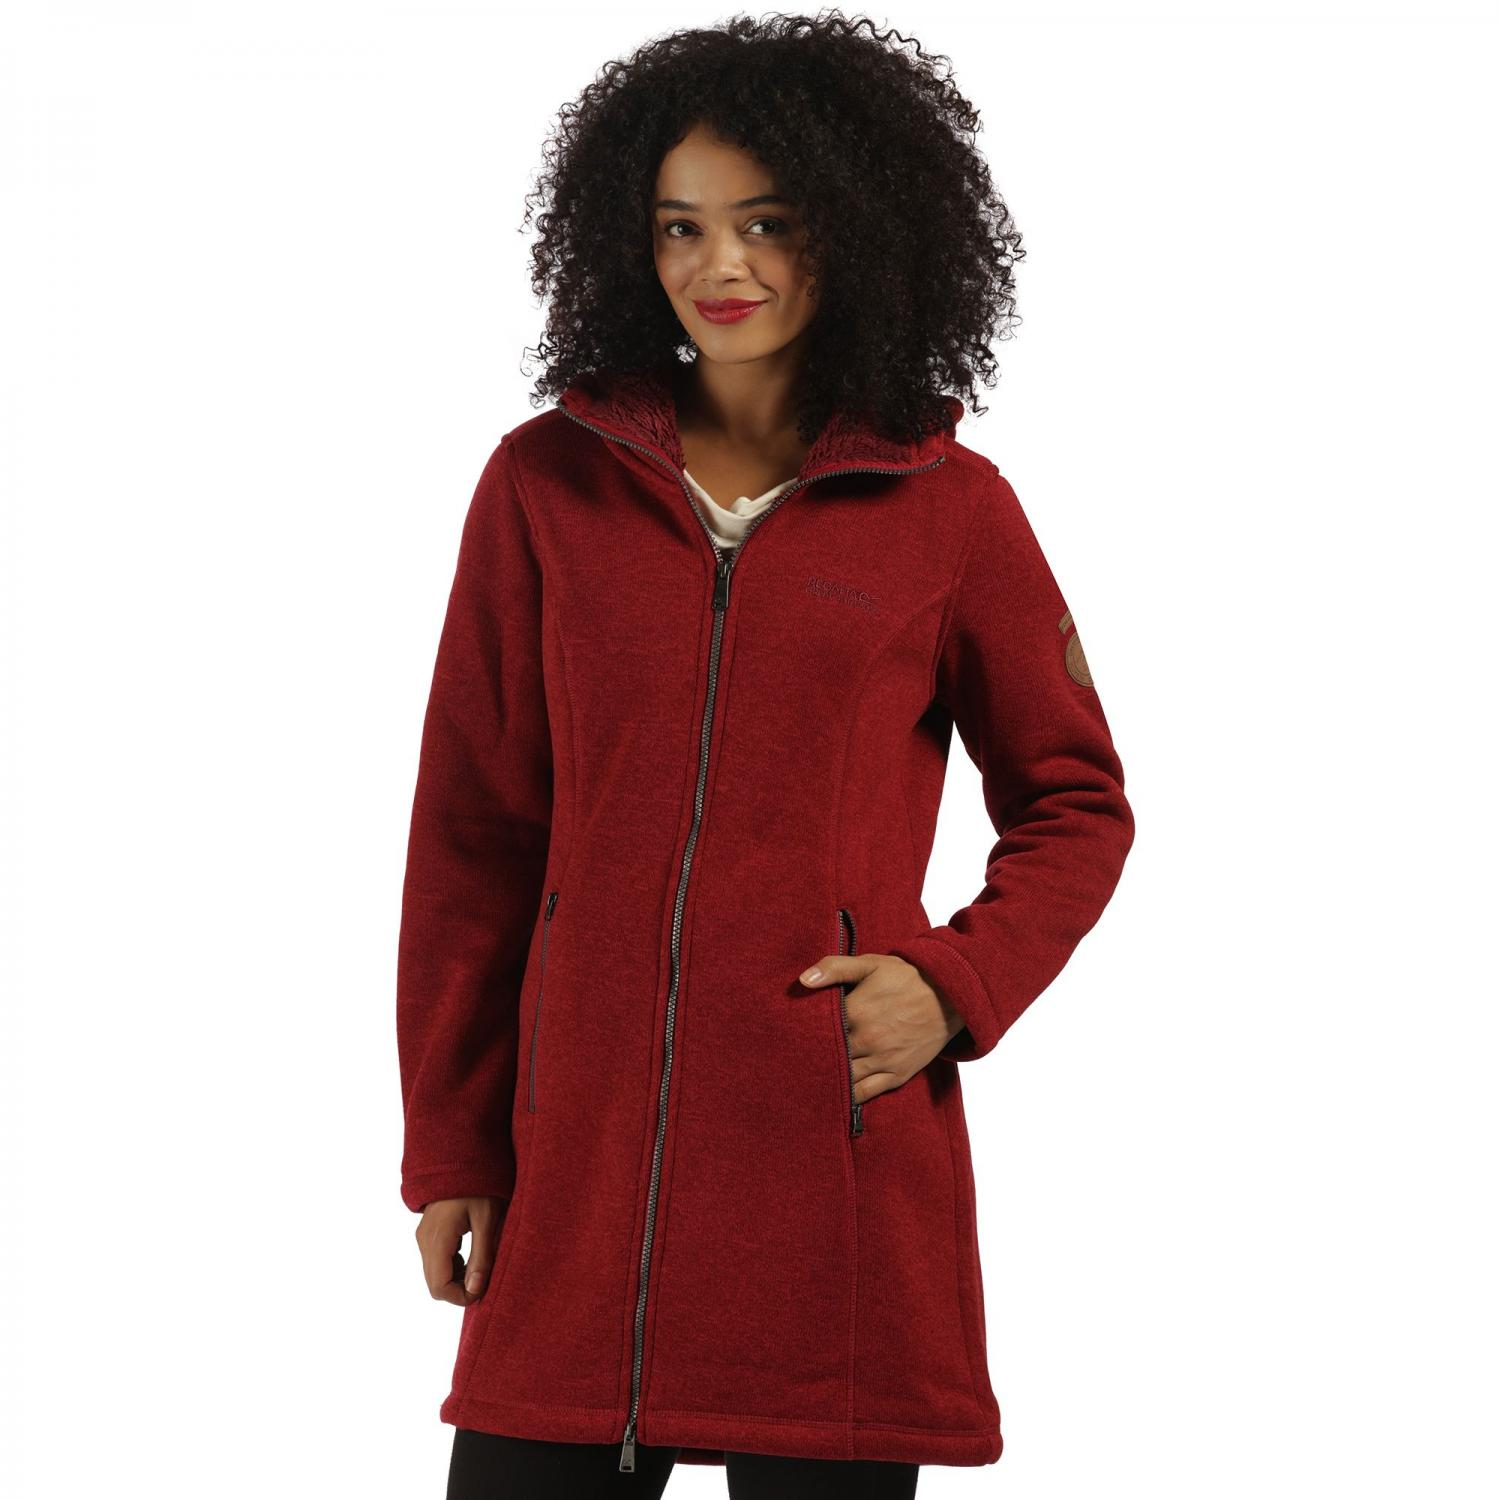 Radella Hooded Fleece Rhubarb Red